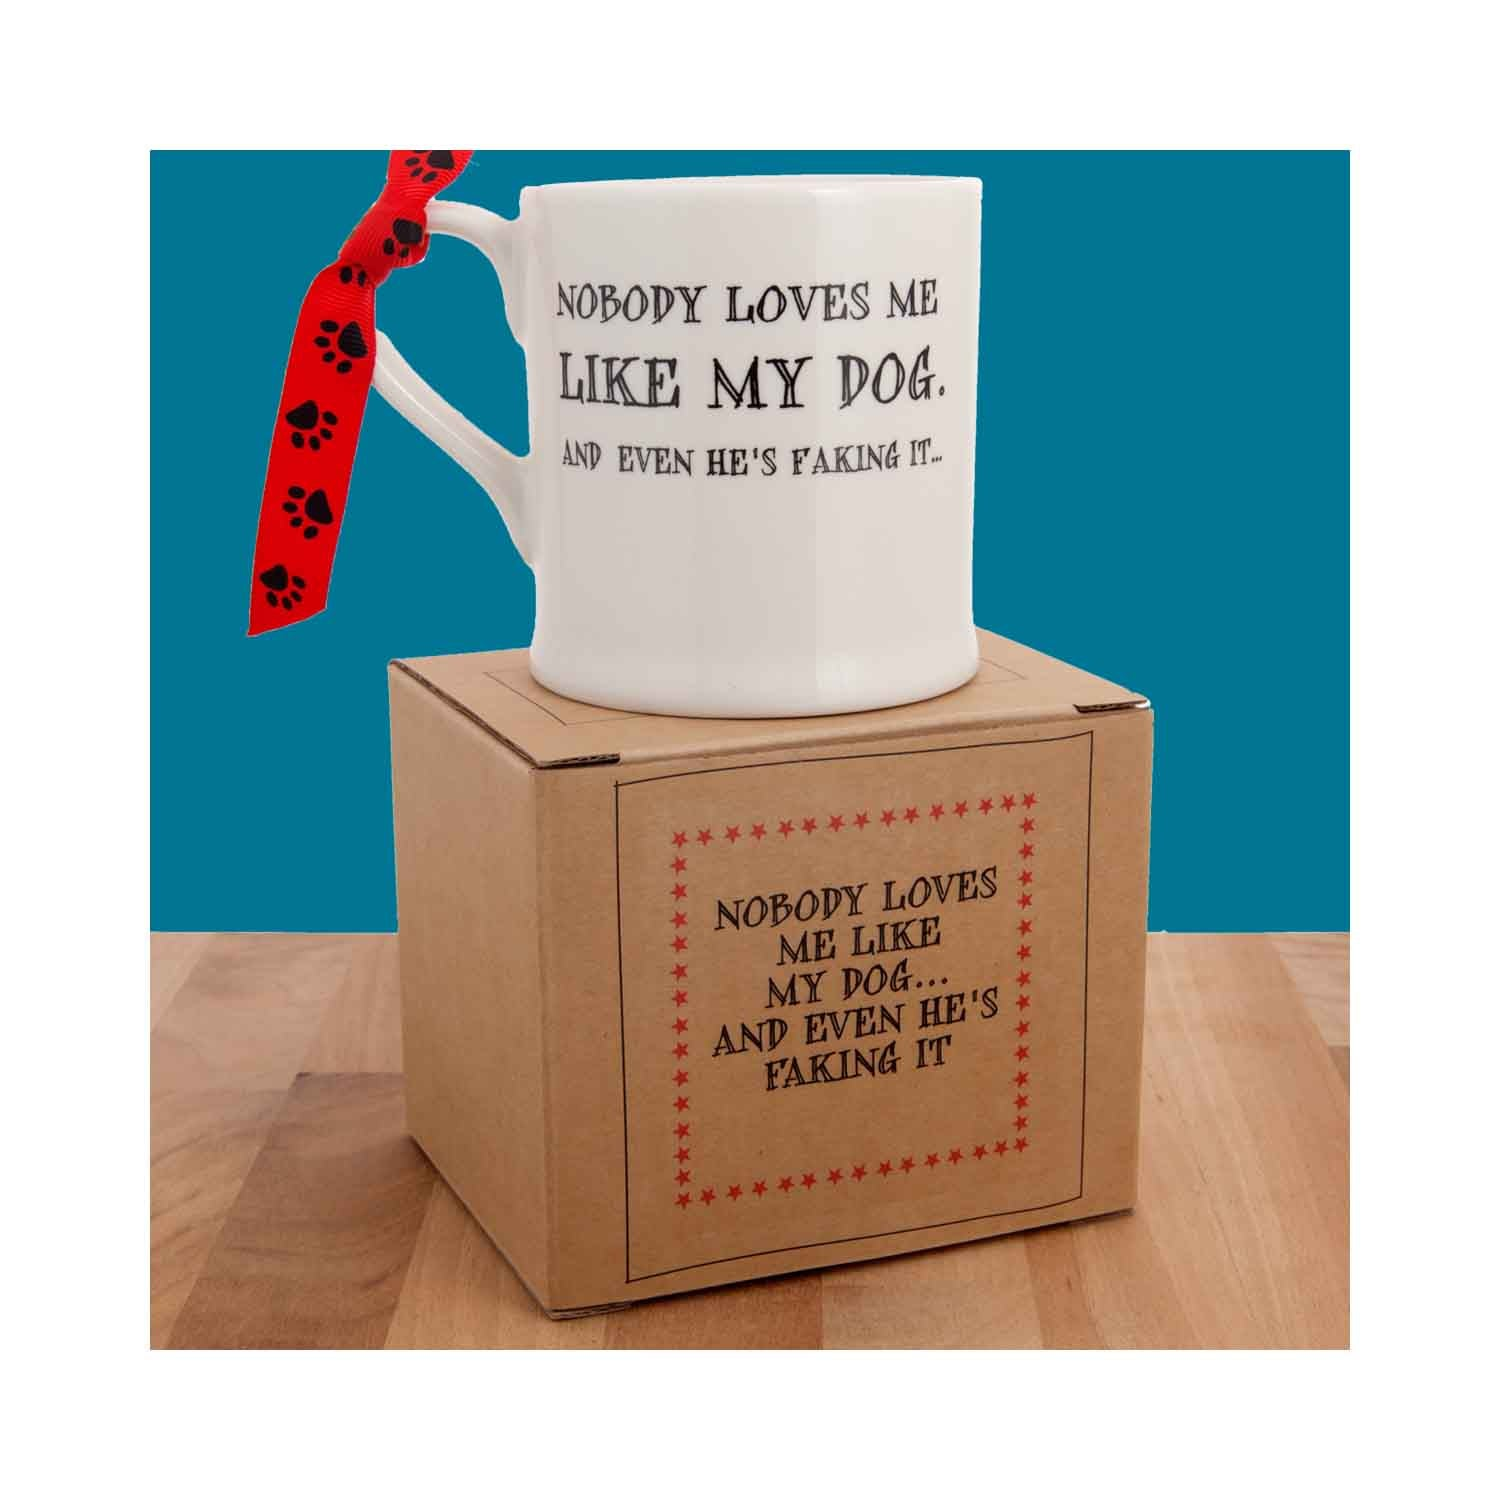 Dog Krazy Gifts - Nobody Loves Me Like My Dog Mug part of the Sweet William range available from DogKrazyGifts.co.uk